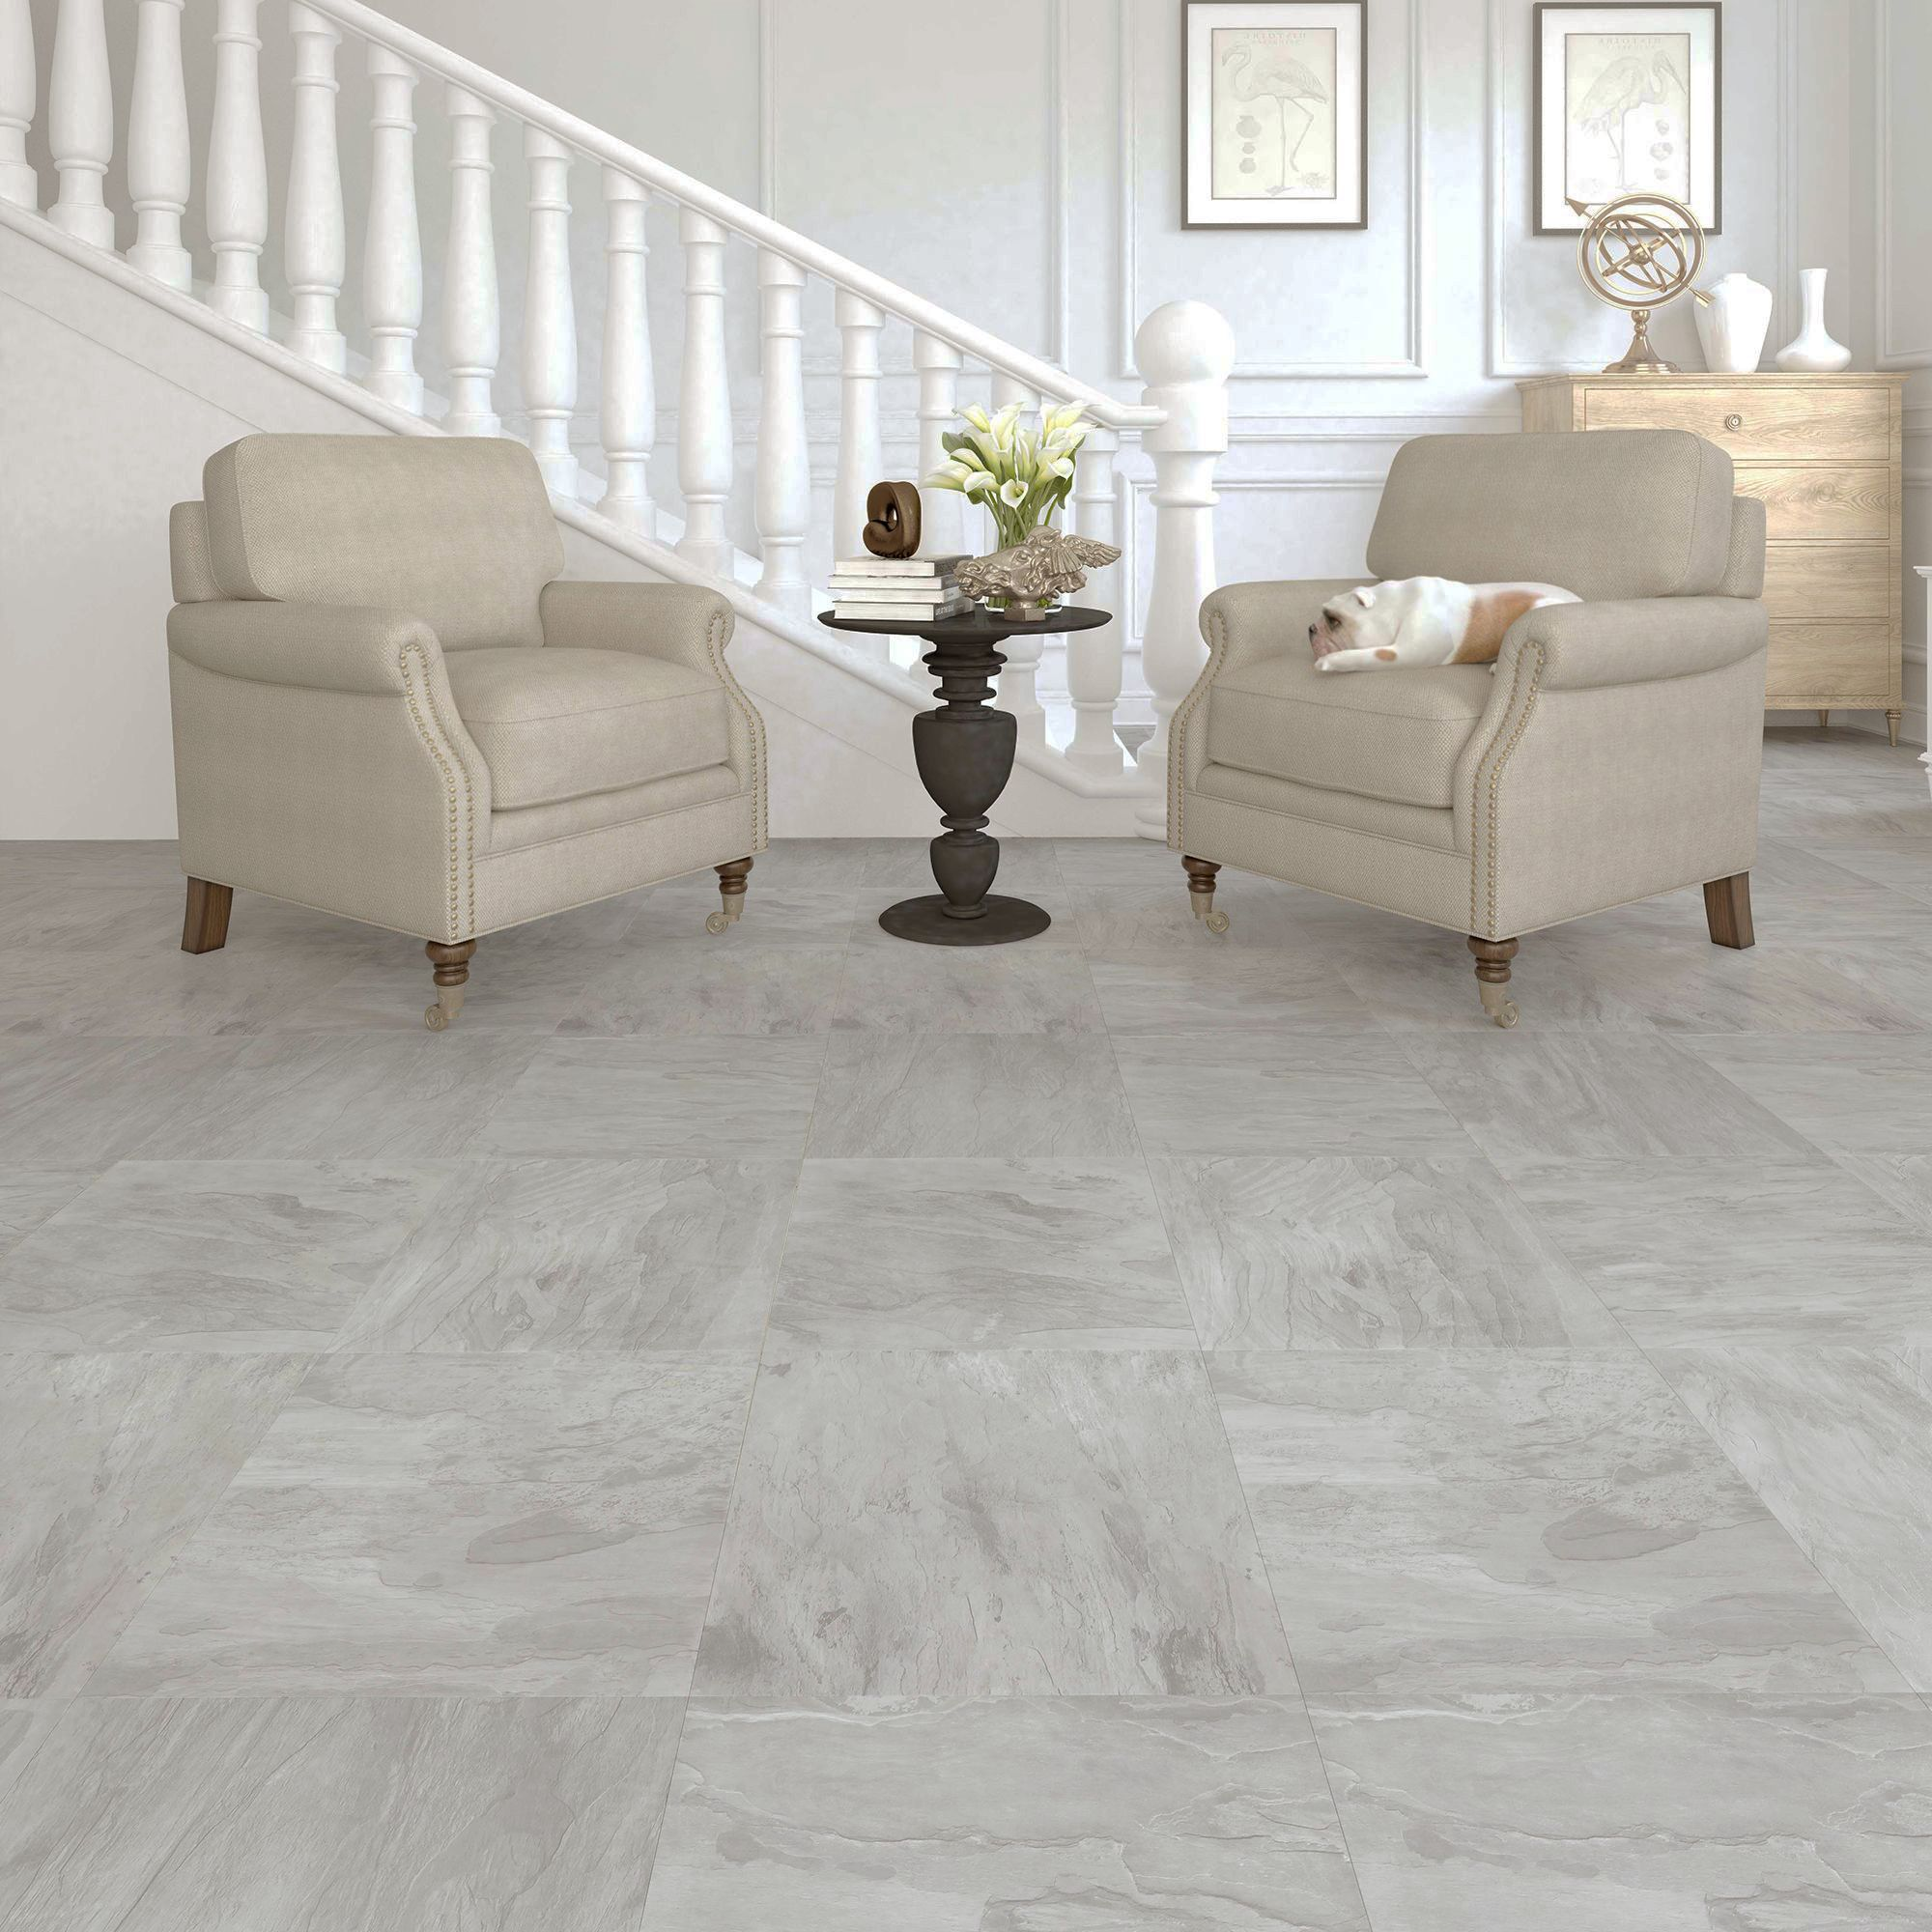 Leggiero Light Grey Slate Effect Laminate Flooring 1.86 m² Pack | Departments | DIY at B&Q